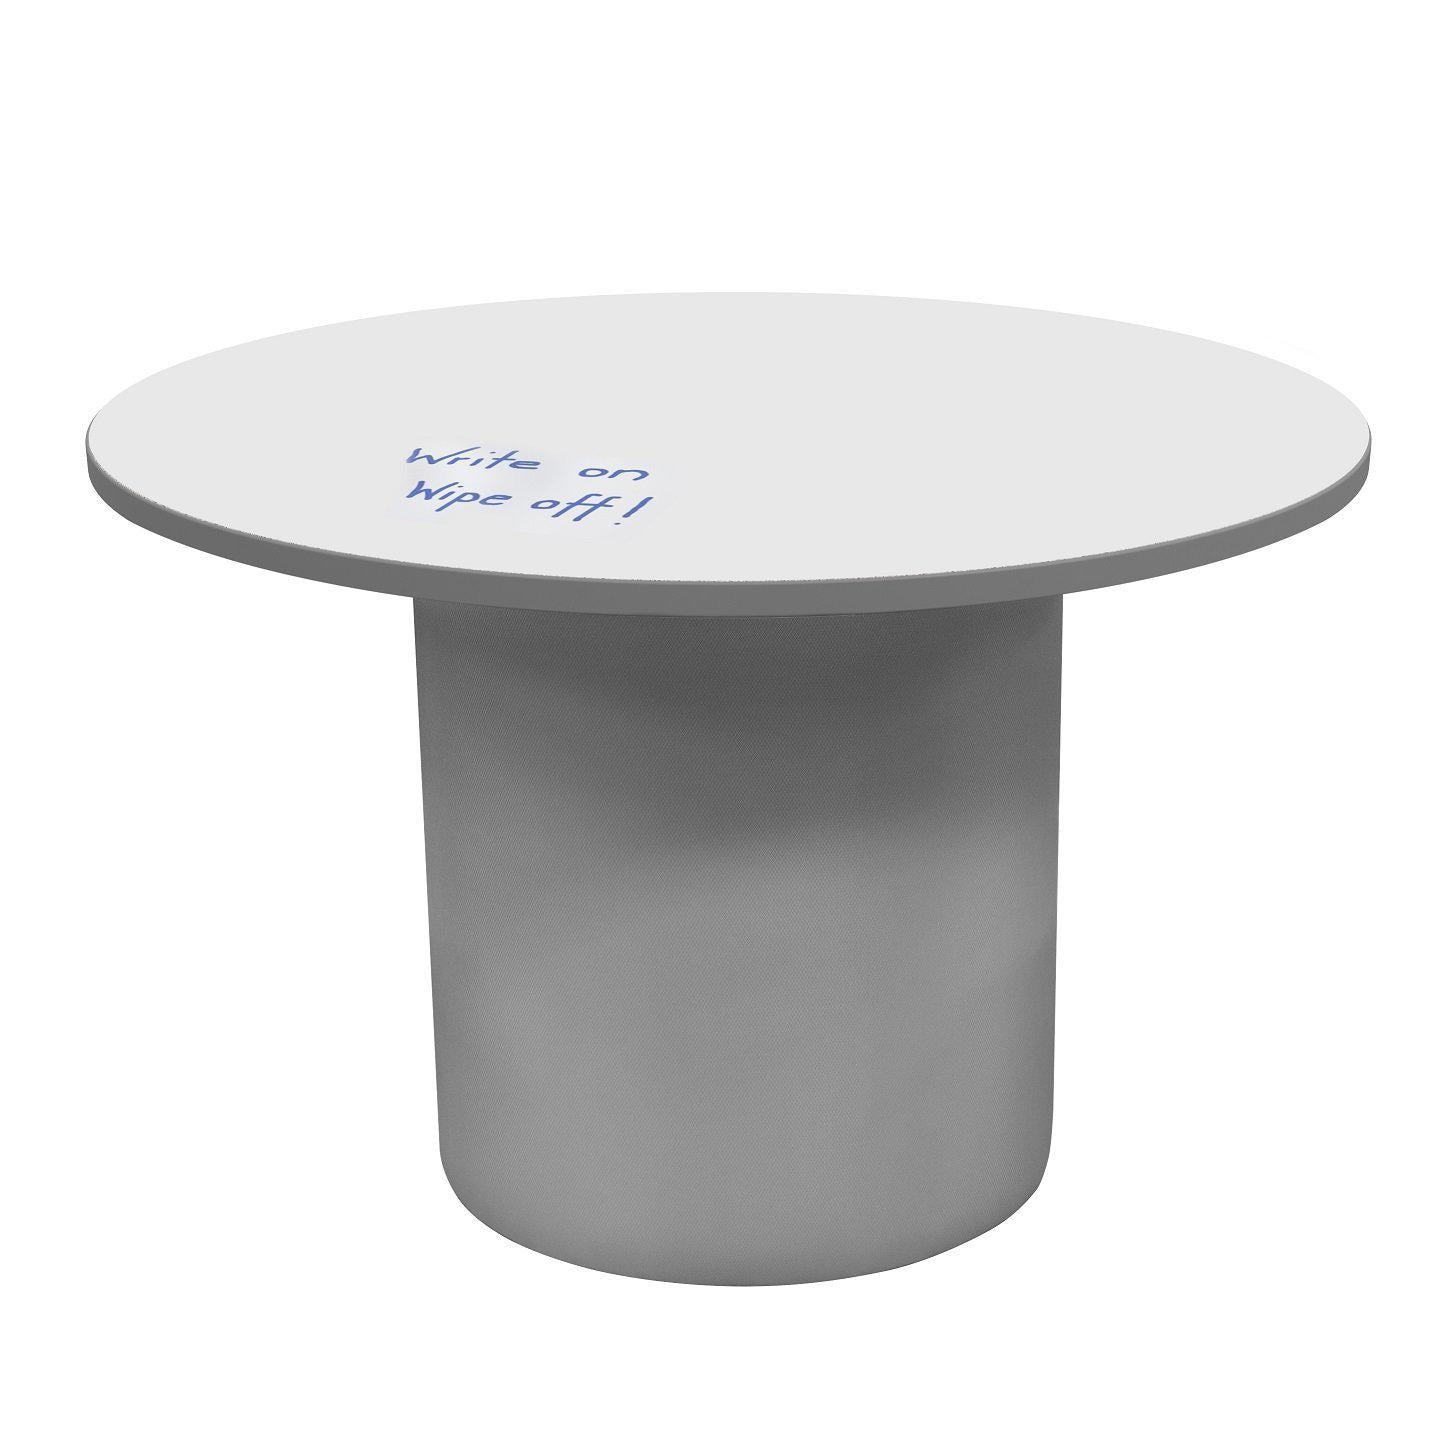 "Sonik™ Soft Seating 48"" Round Table with Markerboard Top and Power/Data Supply-Soft Seating-29""-Markerboard/Gray-Frost"